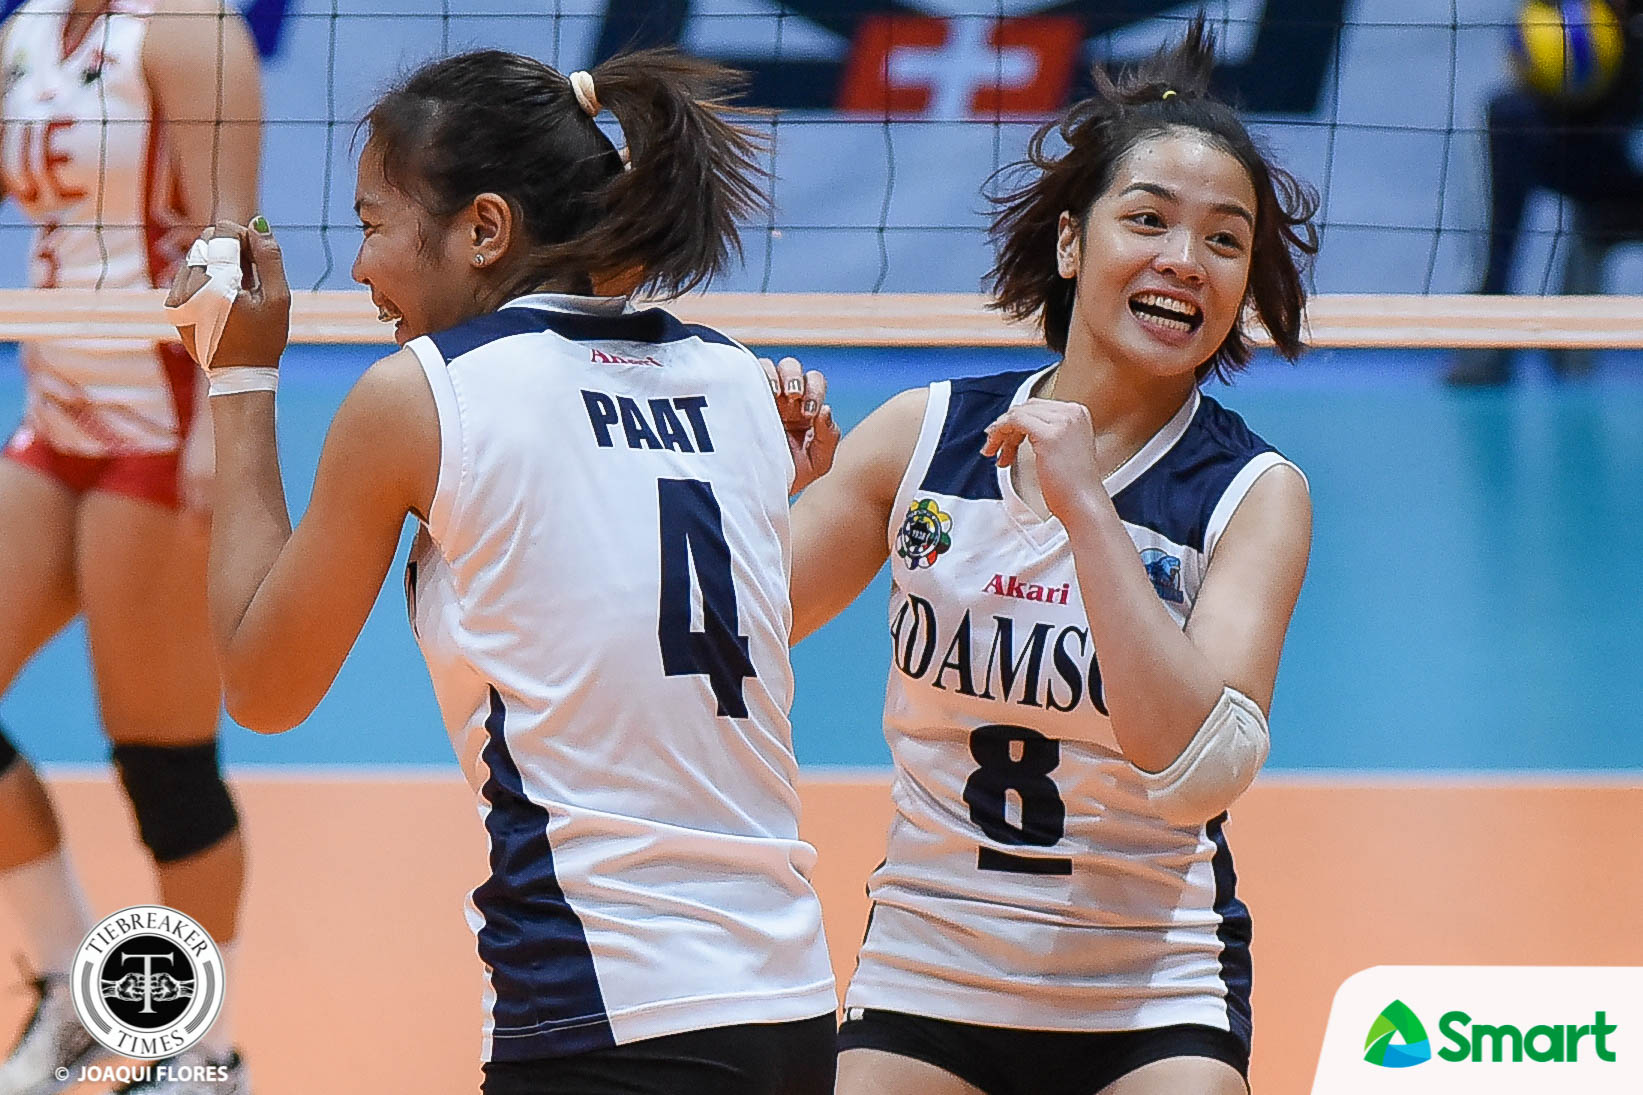 UAAP-80-Volleyball-ADU-vs.-UE-Galanza-6512 Paat can't wait to experience Galanza's staredowns in PVL News PVL Volleyball  - philippine sports news